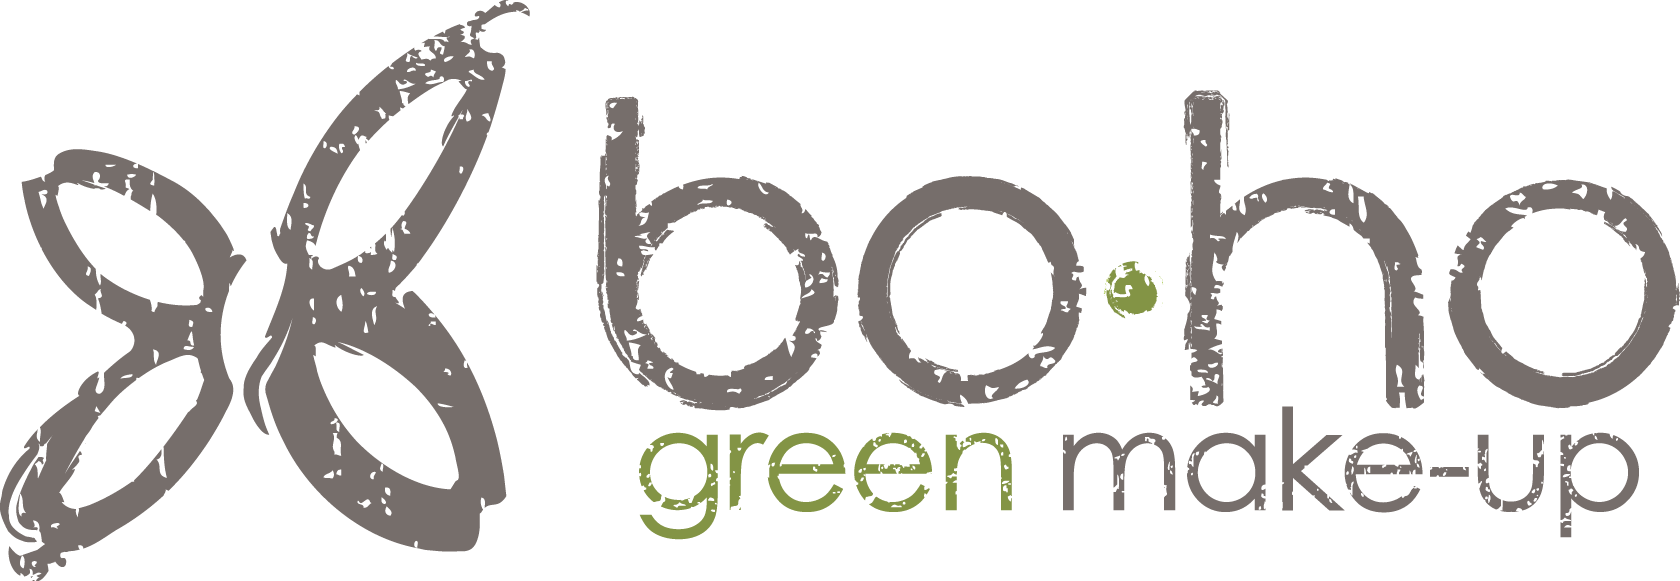 BoHo Green Make-upin logo